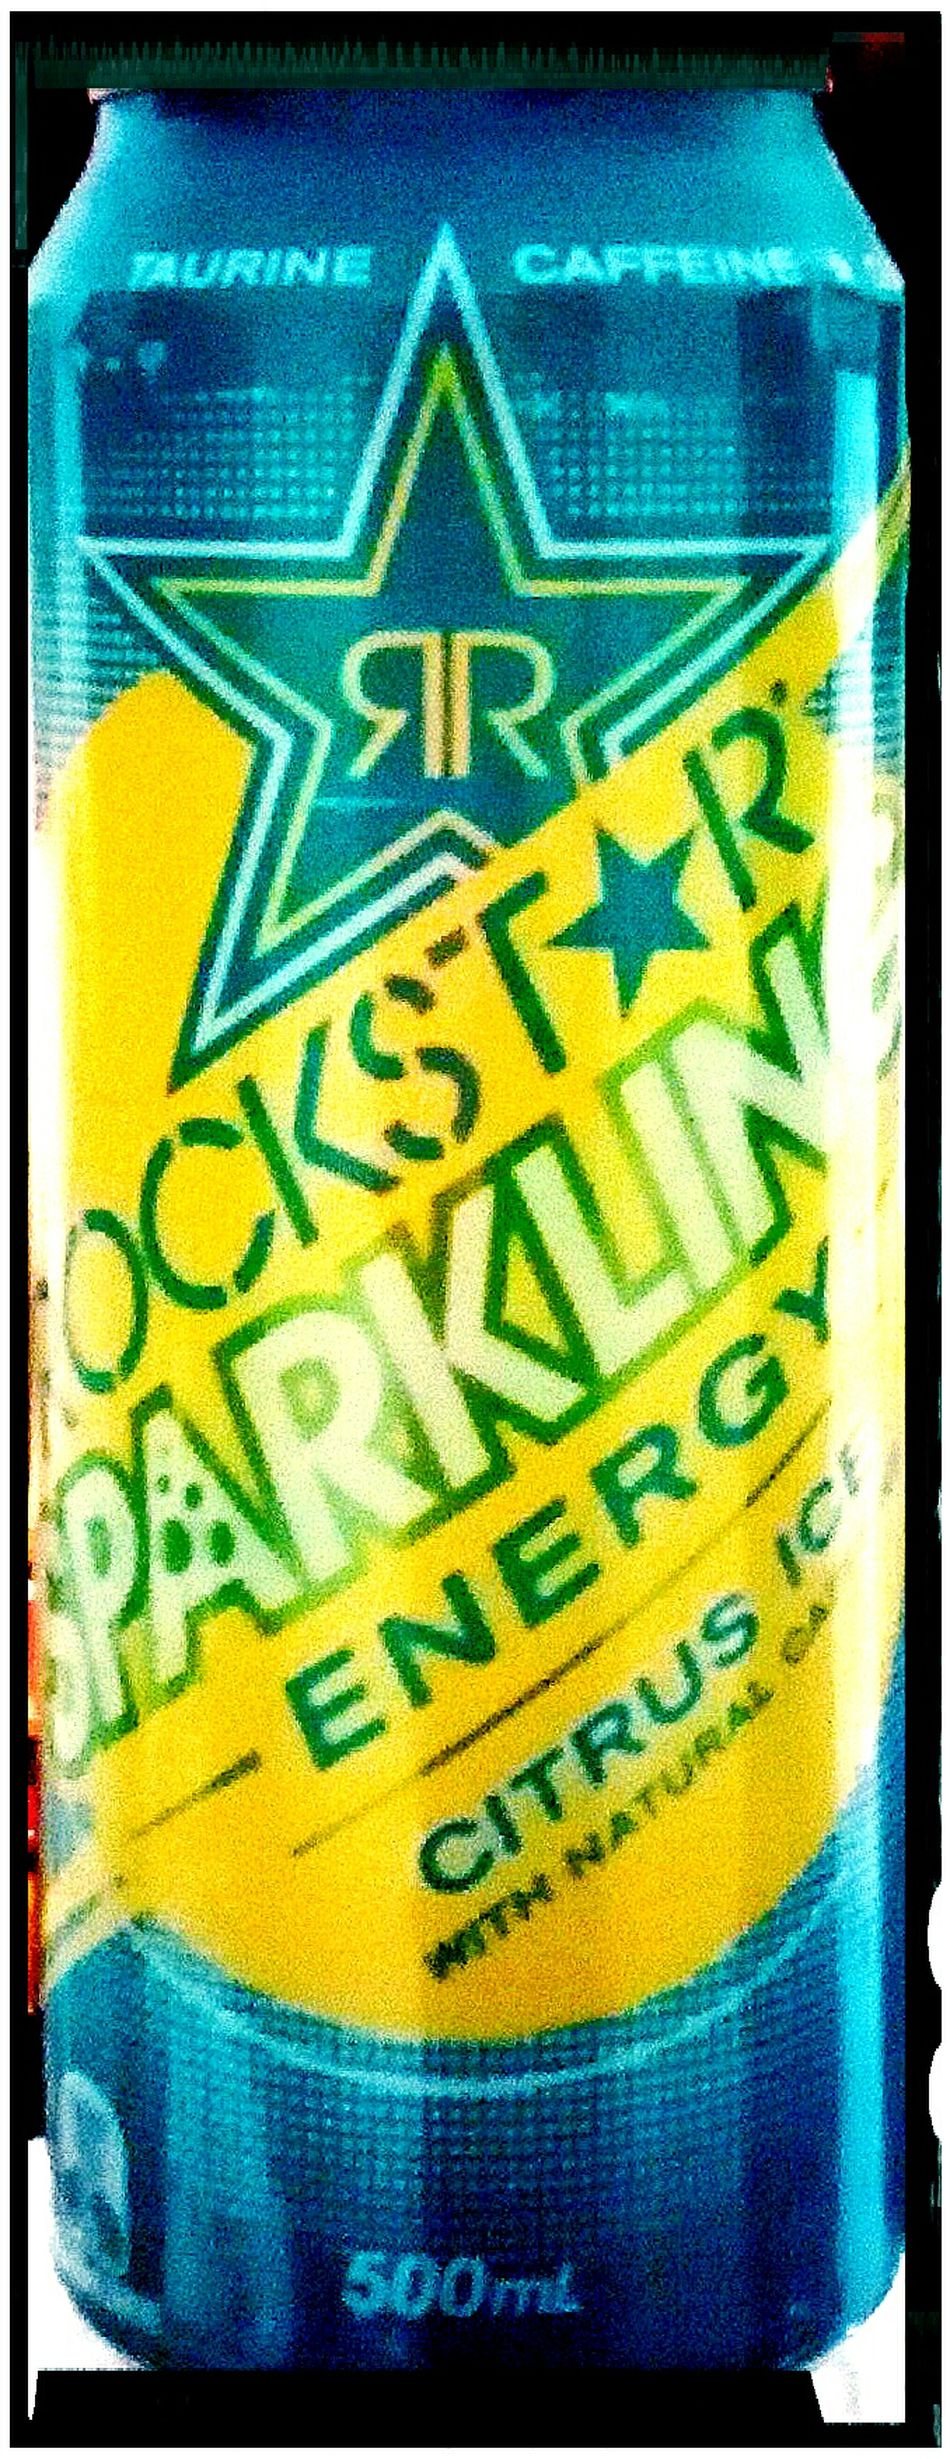 ROCKSTAR Energy Drinks Check This Out Rockst☆r Rocks On Drink Cans Rockstar Rockstar Energy Rockst☆r Rockstar ☆ Rockstarenergydrink Rockstarenergy Rockstar Energy Drink Rockstar Drink Cans Rockstar Rocks On Rockst☆r Energy Drinks ROCKST☆R Energy Drink Rockst☆r Citrus Flavor ROCKST☆R Sparkling Citrus Rockst☆r Sparkling Citrus Ice Citrus Ice Flavour Citrus Ice Flavor Rockst☆rSparklingCitrusDrink Energydrinks Energydrink Energy Drink EnergyDrinkCans